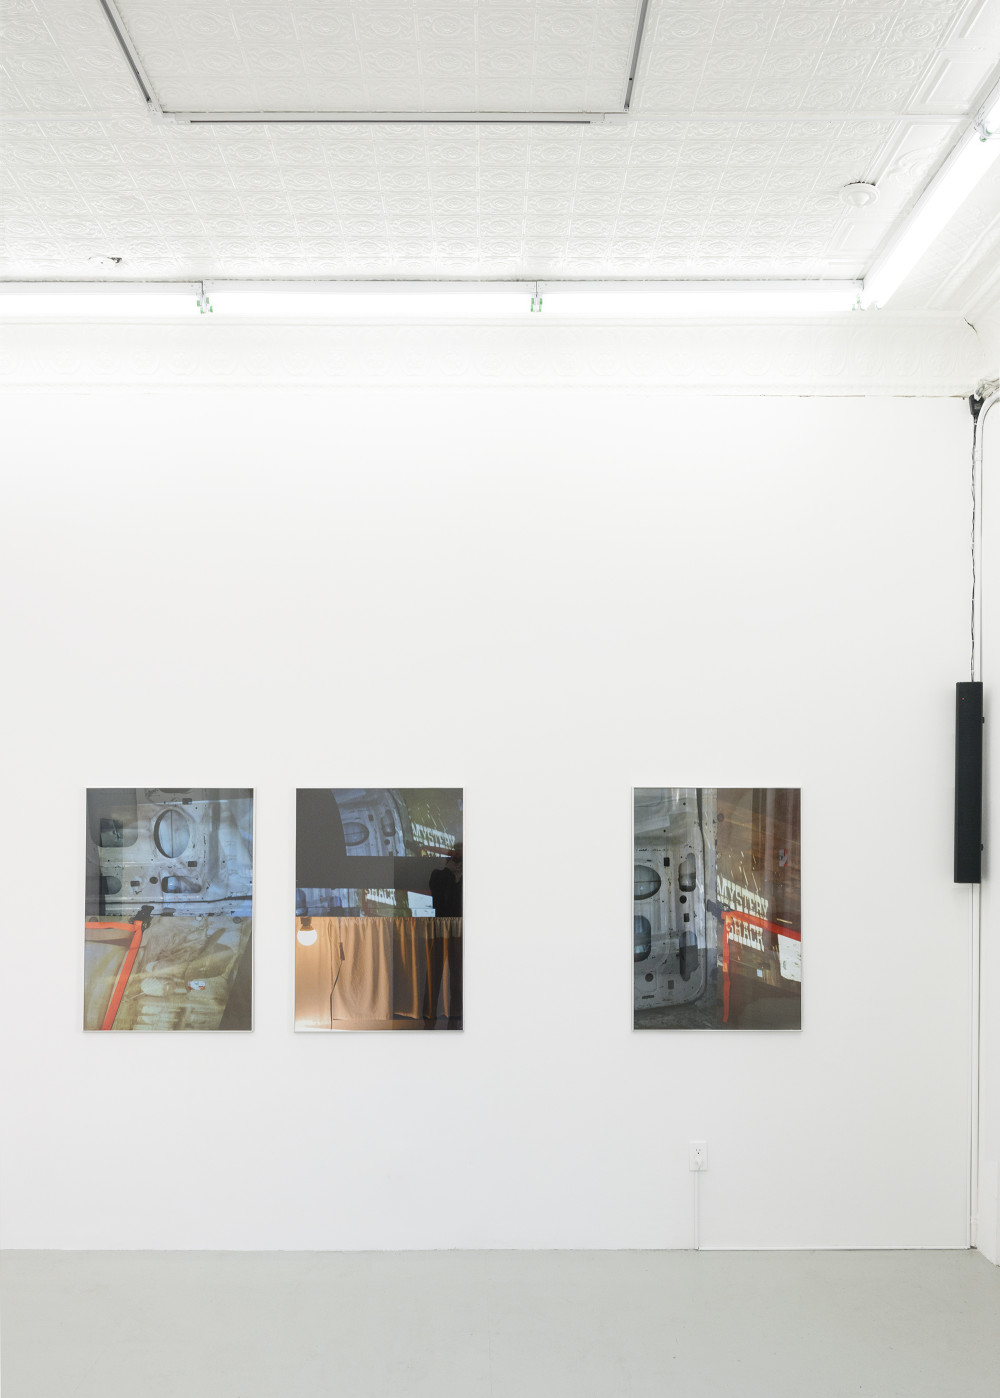 No Dice (I),2015 Installation View